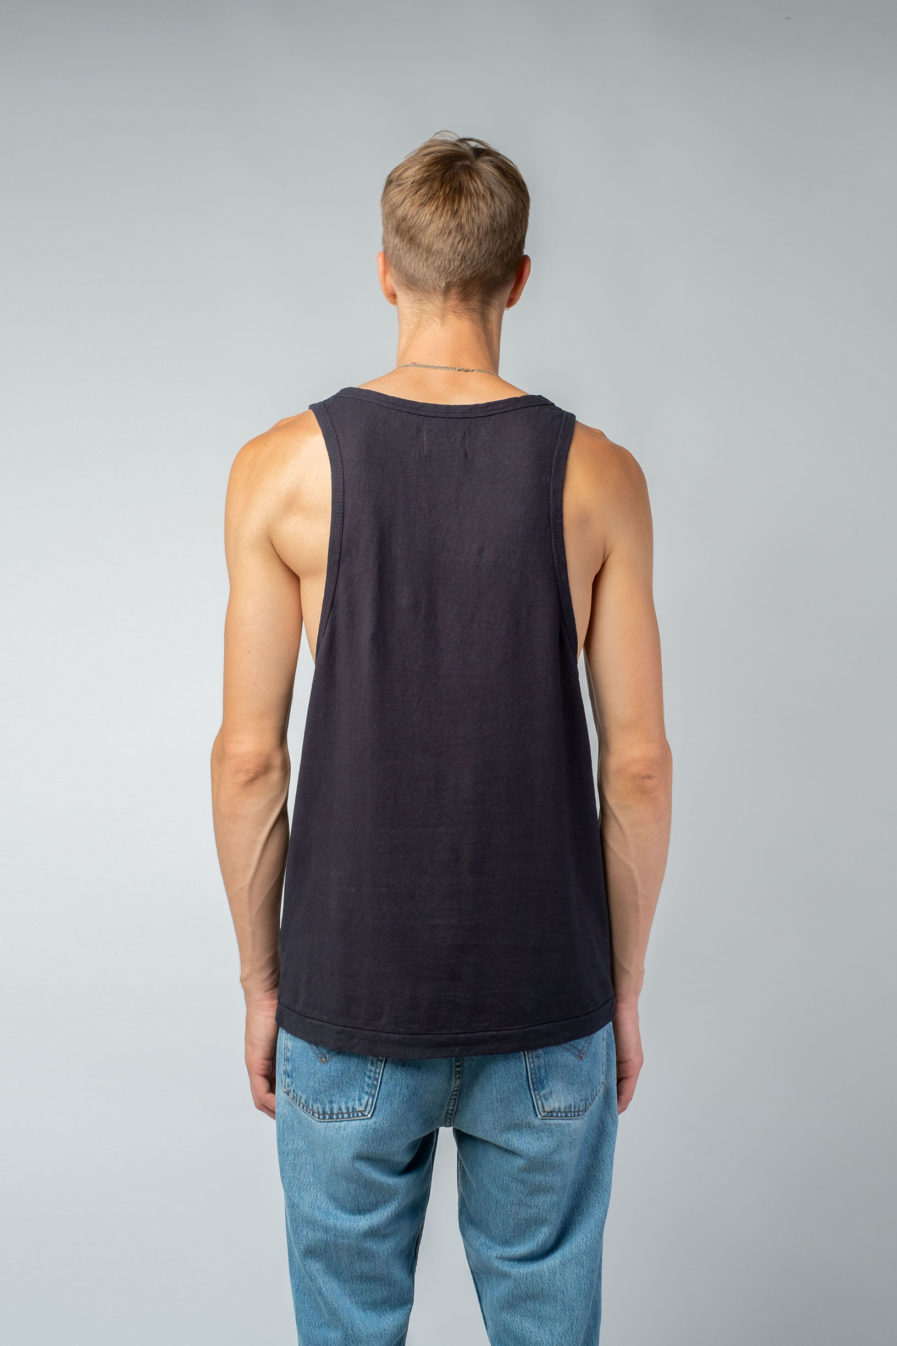 MAN unisex singlet tanktop hemp organic cotton LAU Carbon black back